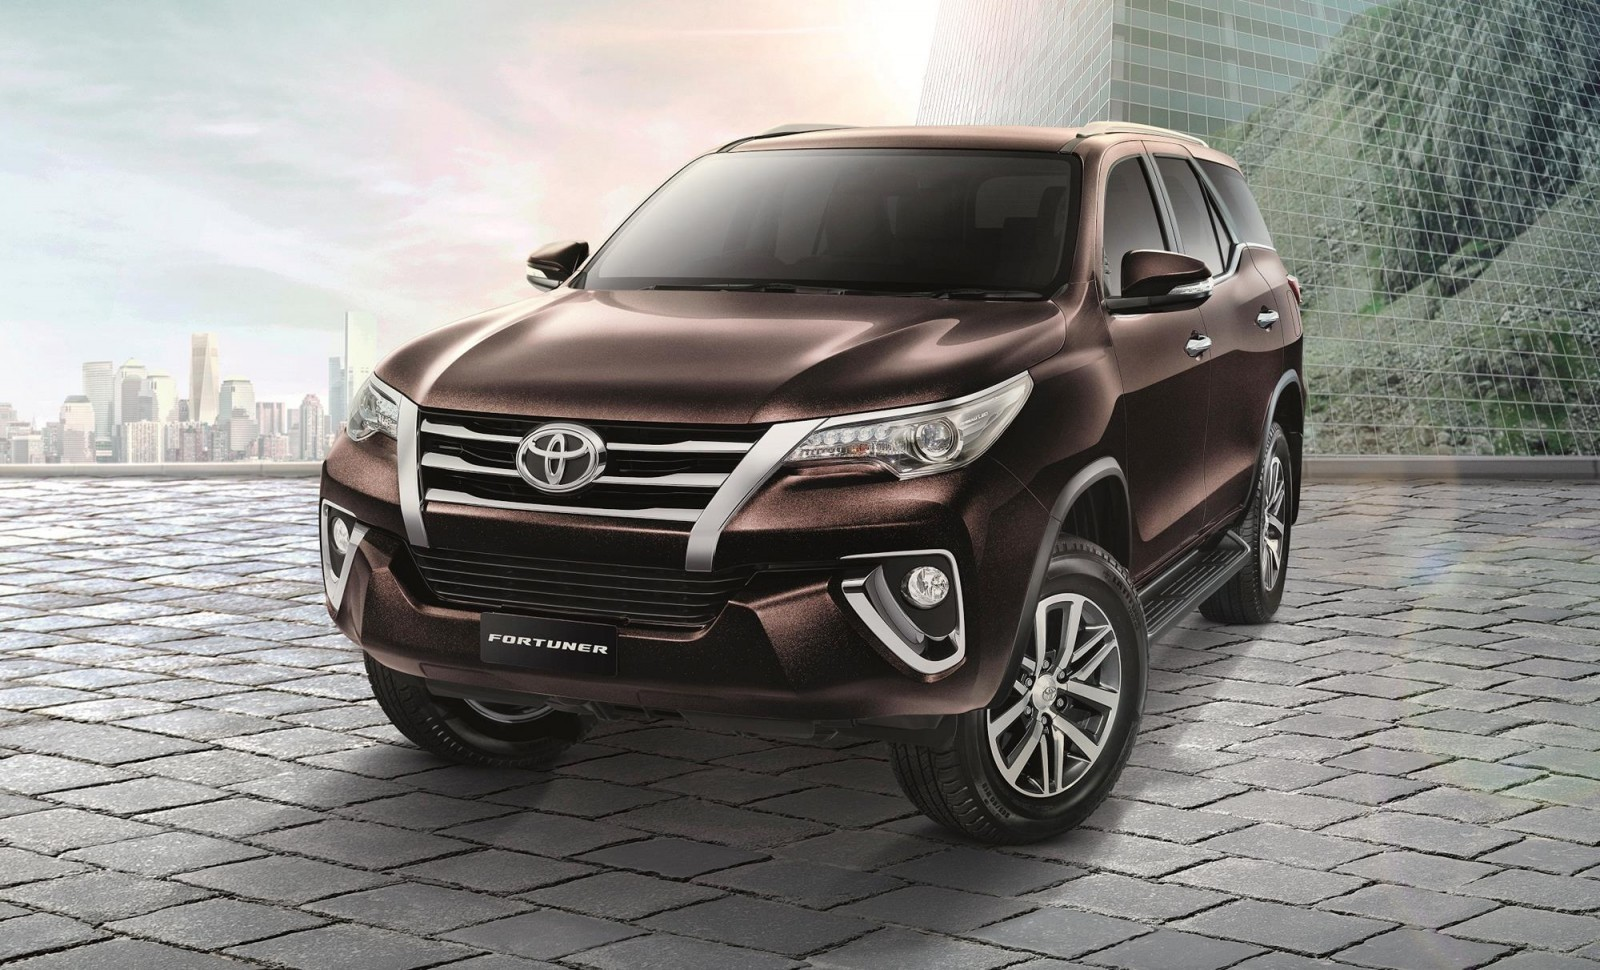 2016 toyota fortuner global suv previews us market 2018 lexus gx460 replacement. Black Bedroom Furniture Sets. Home Design Ideas